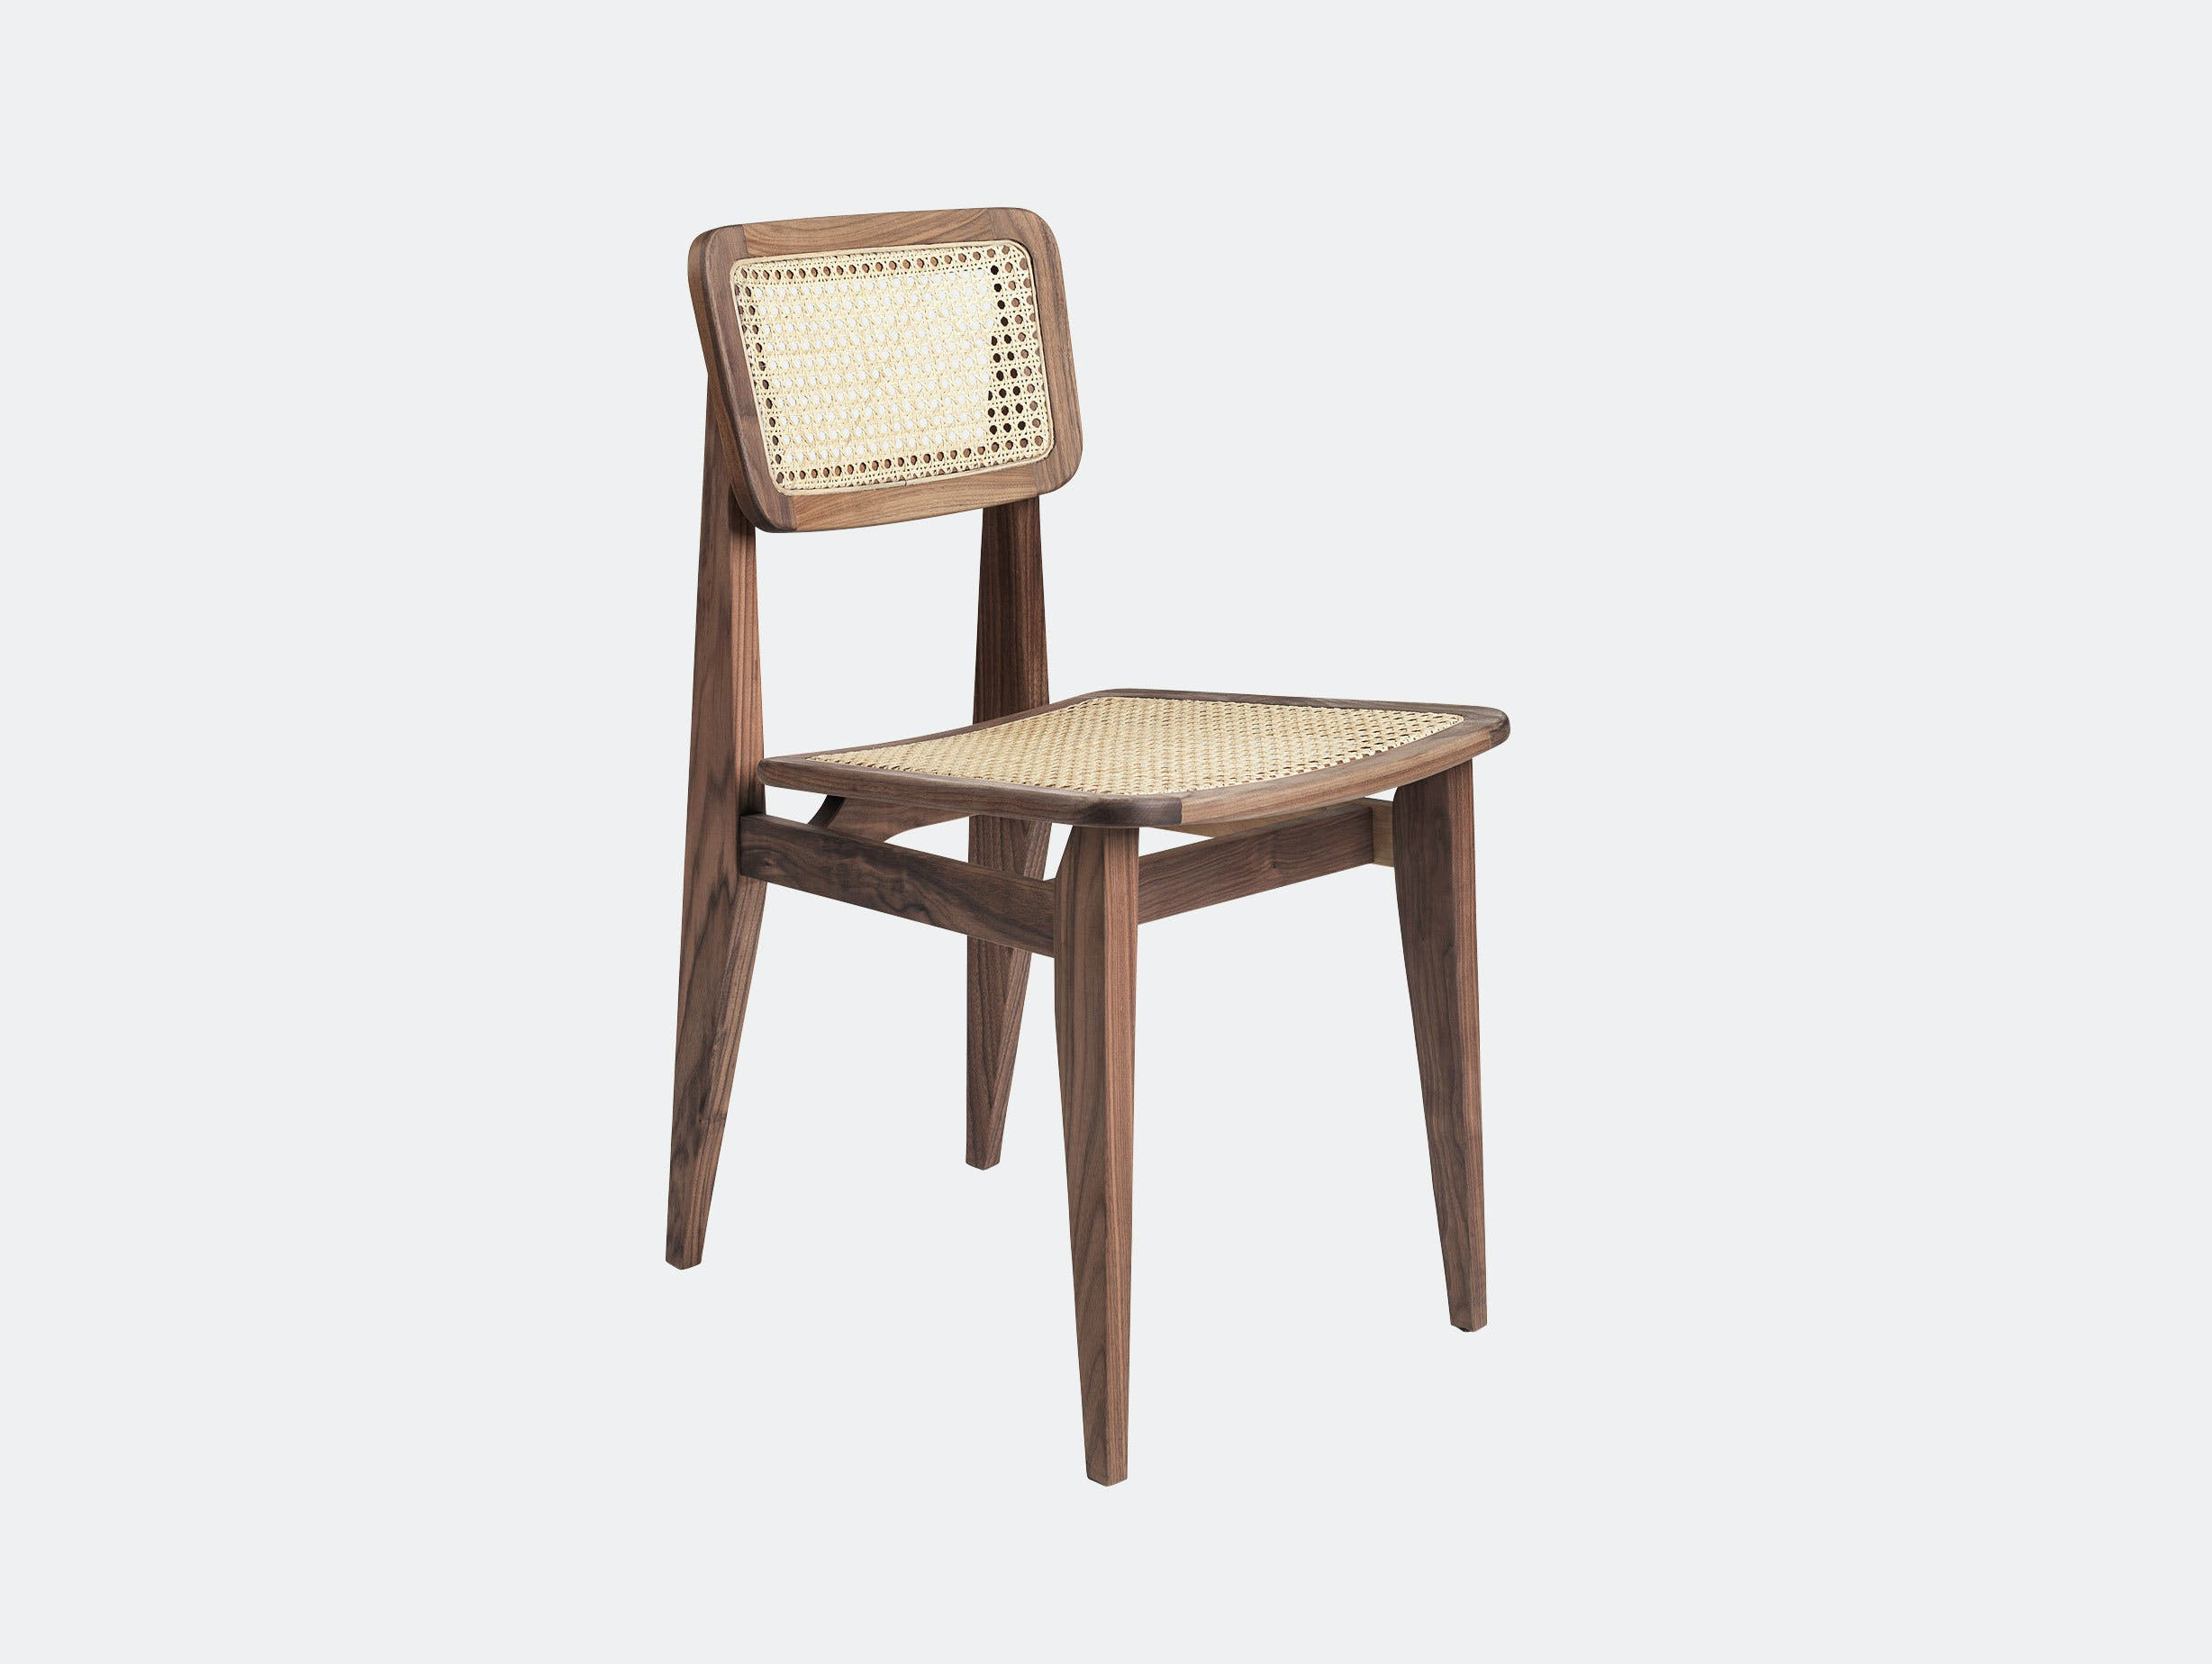 Gubi C Chair Dining Chair walnut cane Marcel Gascoin